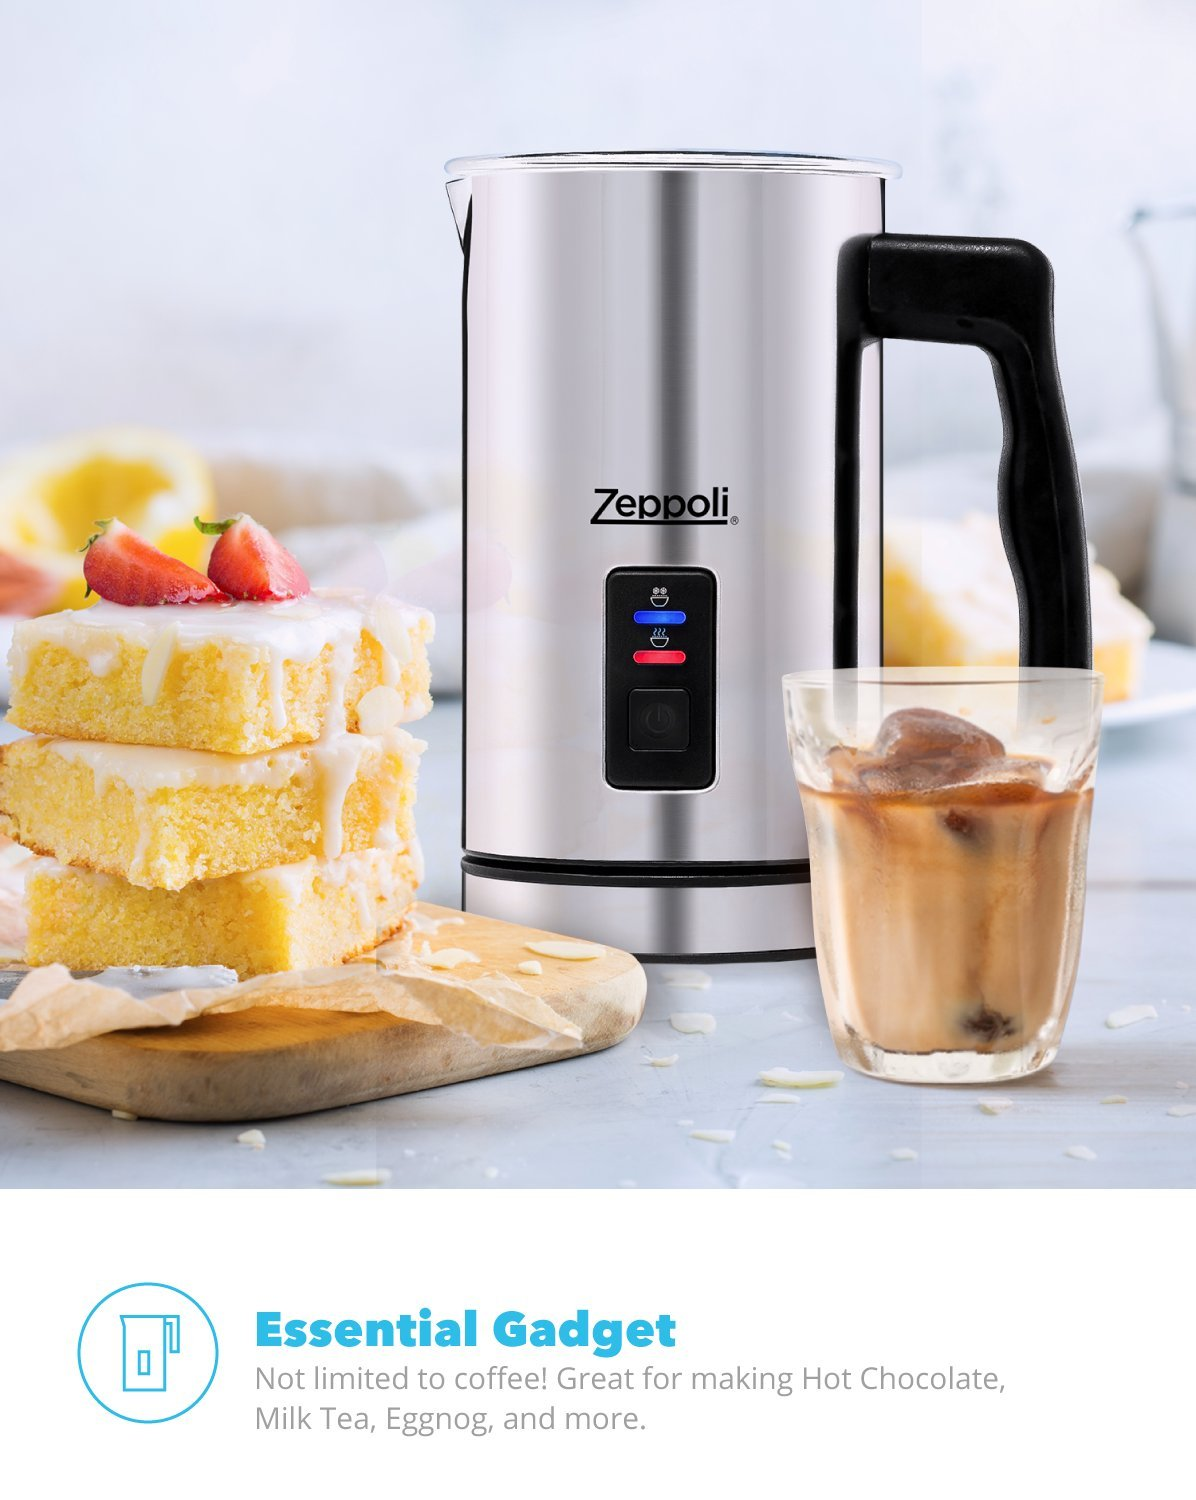 Zeppoli Milk Frother and Warmer - Automatic Milk Heater, Electric Milk Steamer and Milk Foamer | Great as a Latte Frother and Cappuccino Maker for Coffee and Hot Chocolate - Comes With a Silicone Scraper by Zeppoli (Image #7)